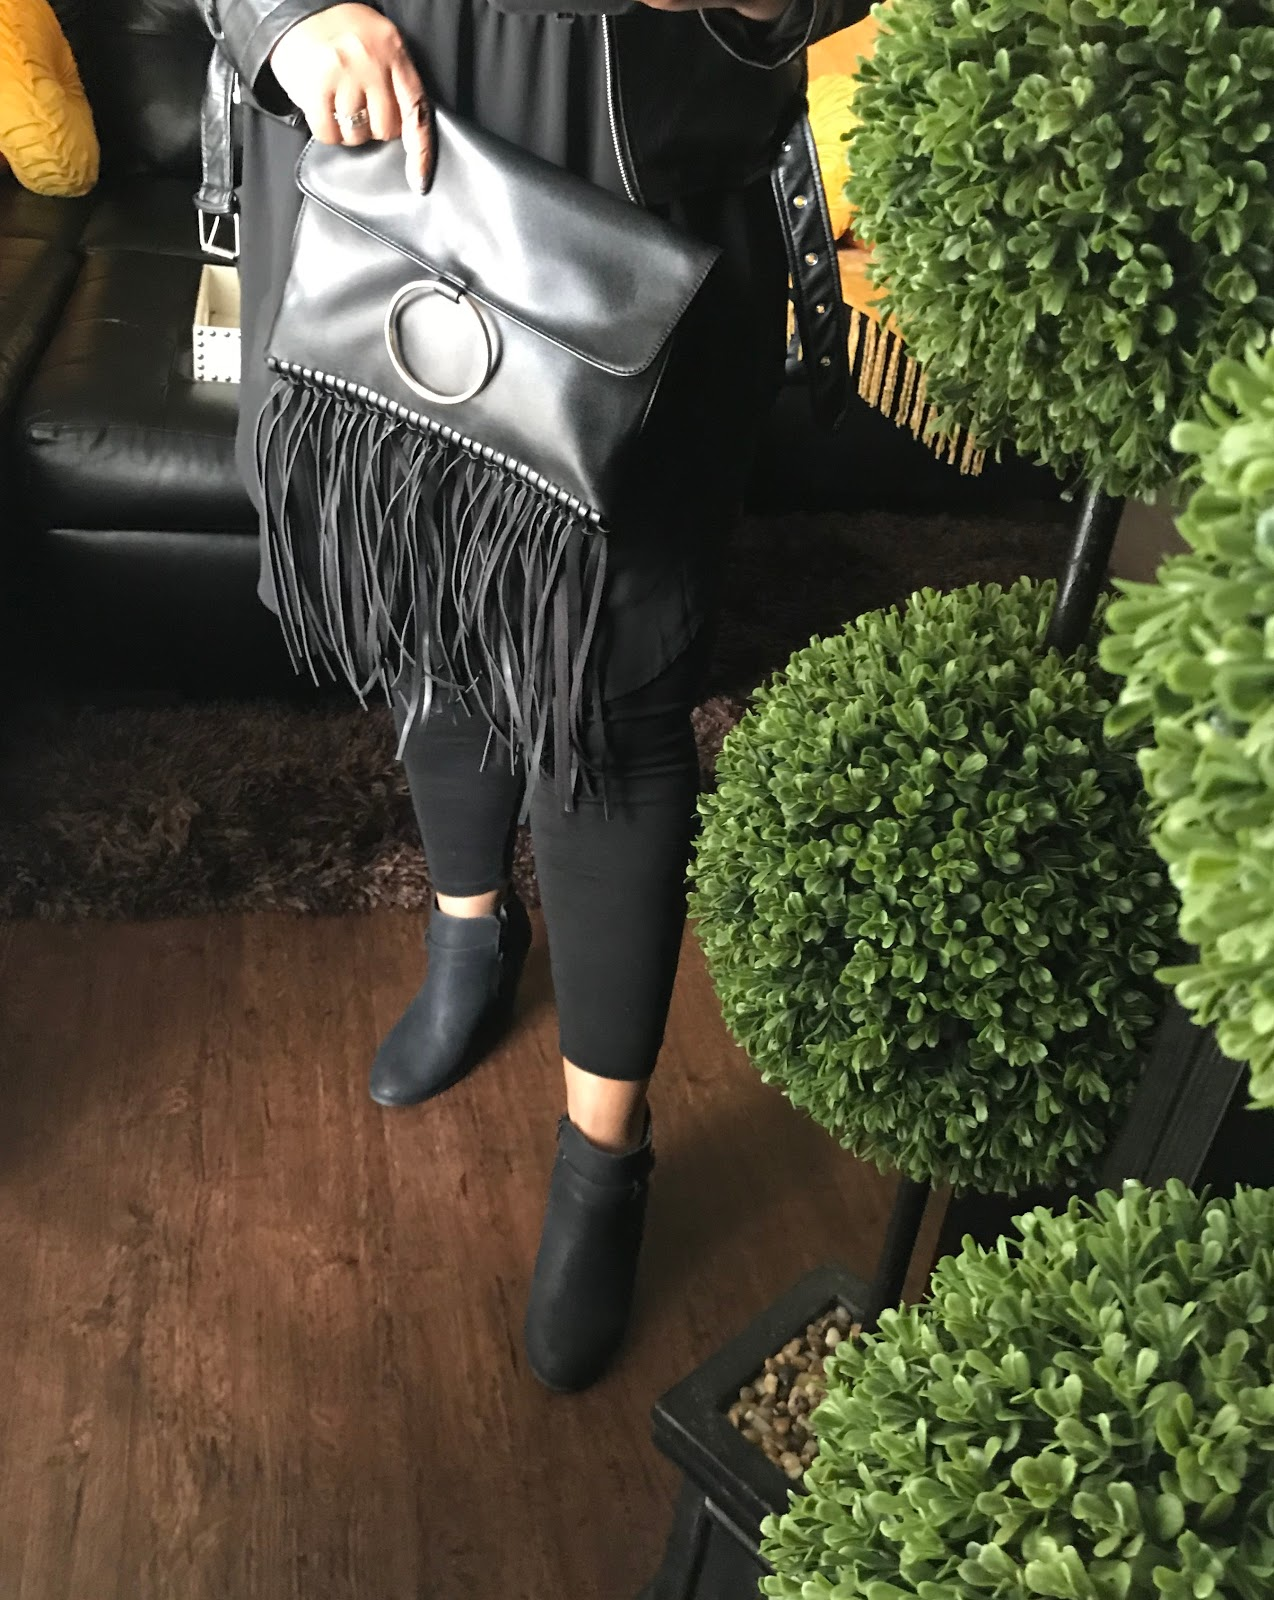 Tangie Bell sharing her outfit, leggings, fringe handbag, and black boots before DIY sale shopping and making jewelry